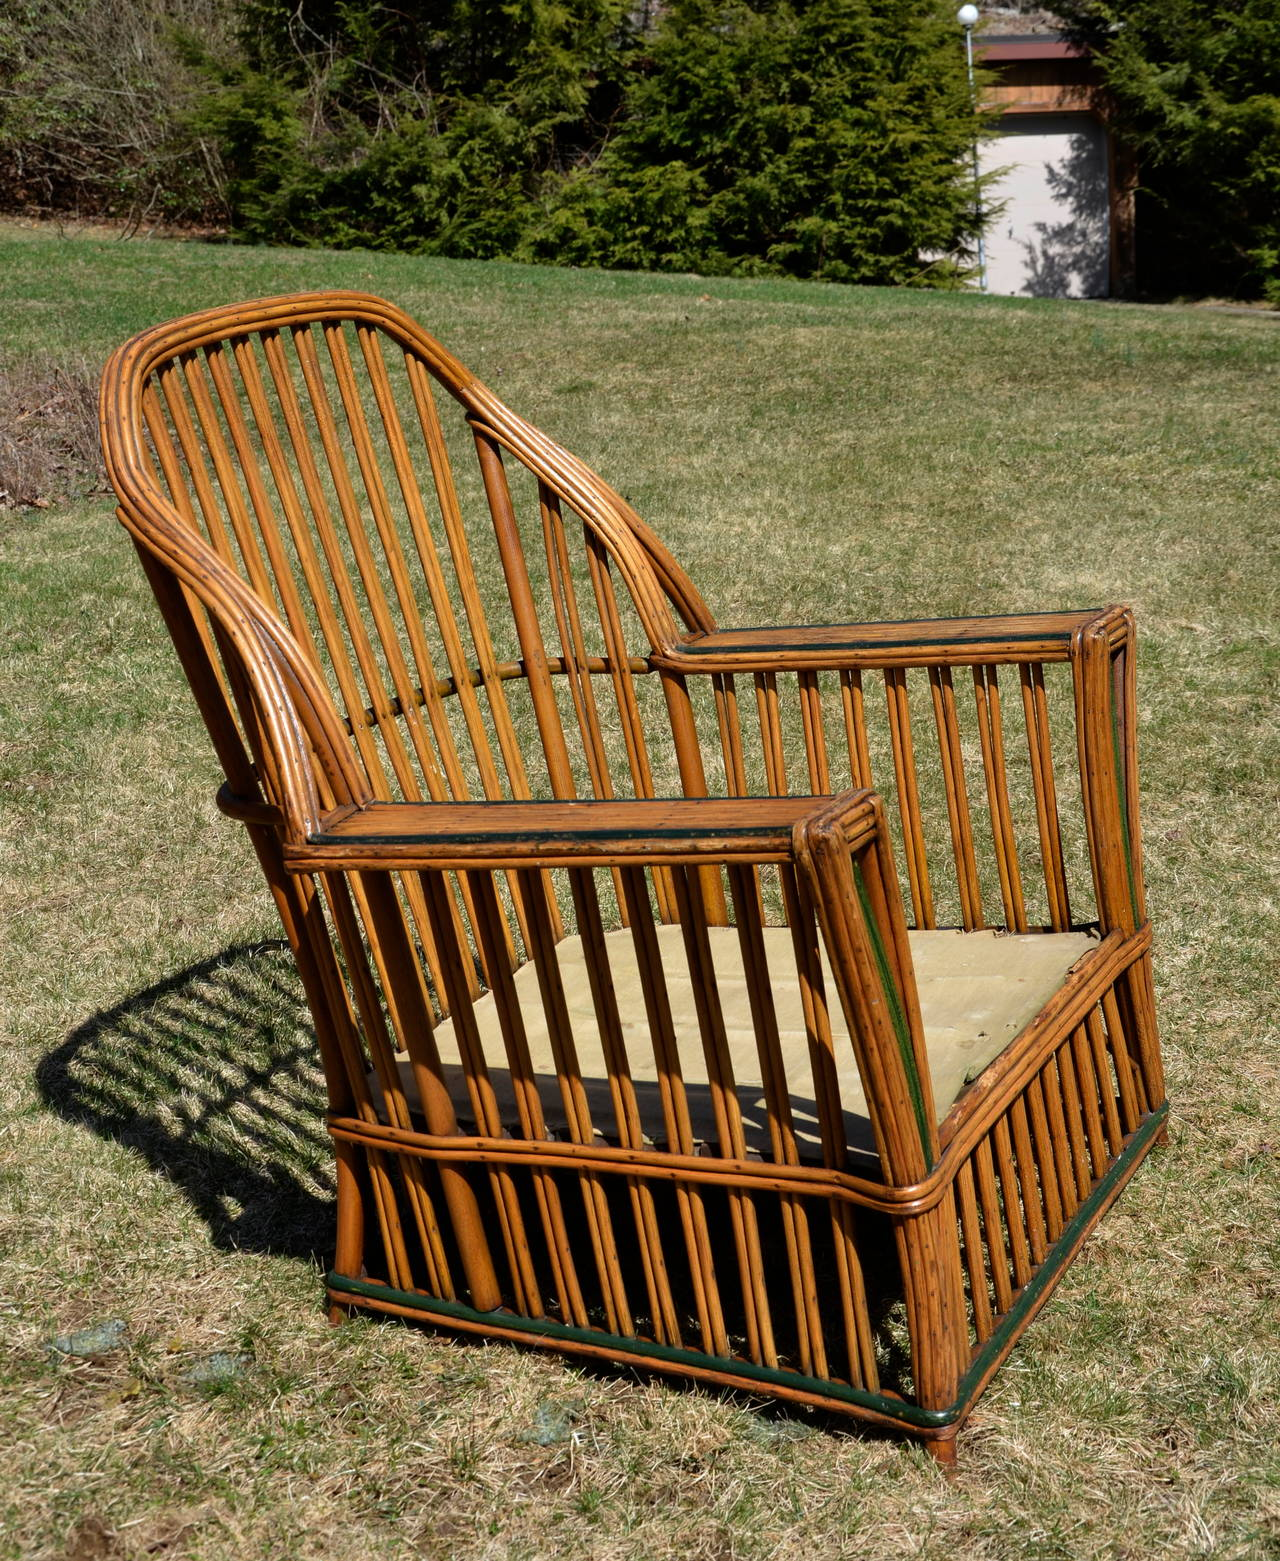 heywood wakefield wicker chairs best bean bag for dorms antique stick seating set at 1stdibs